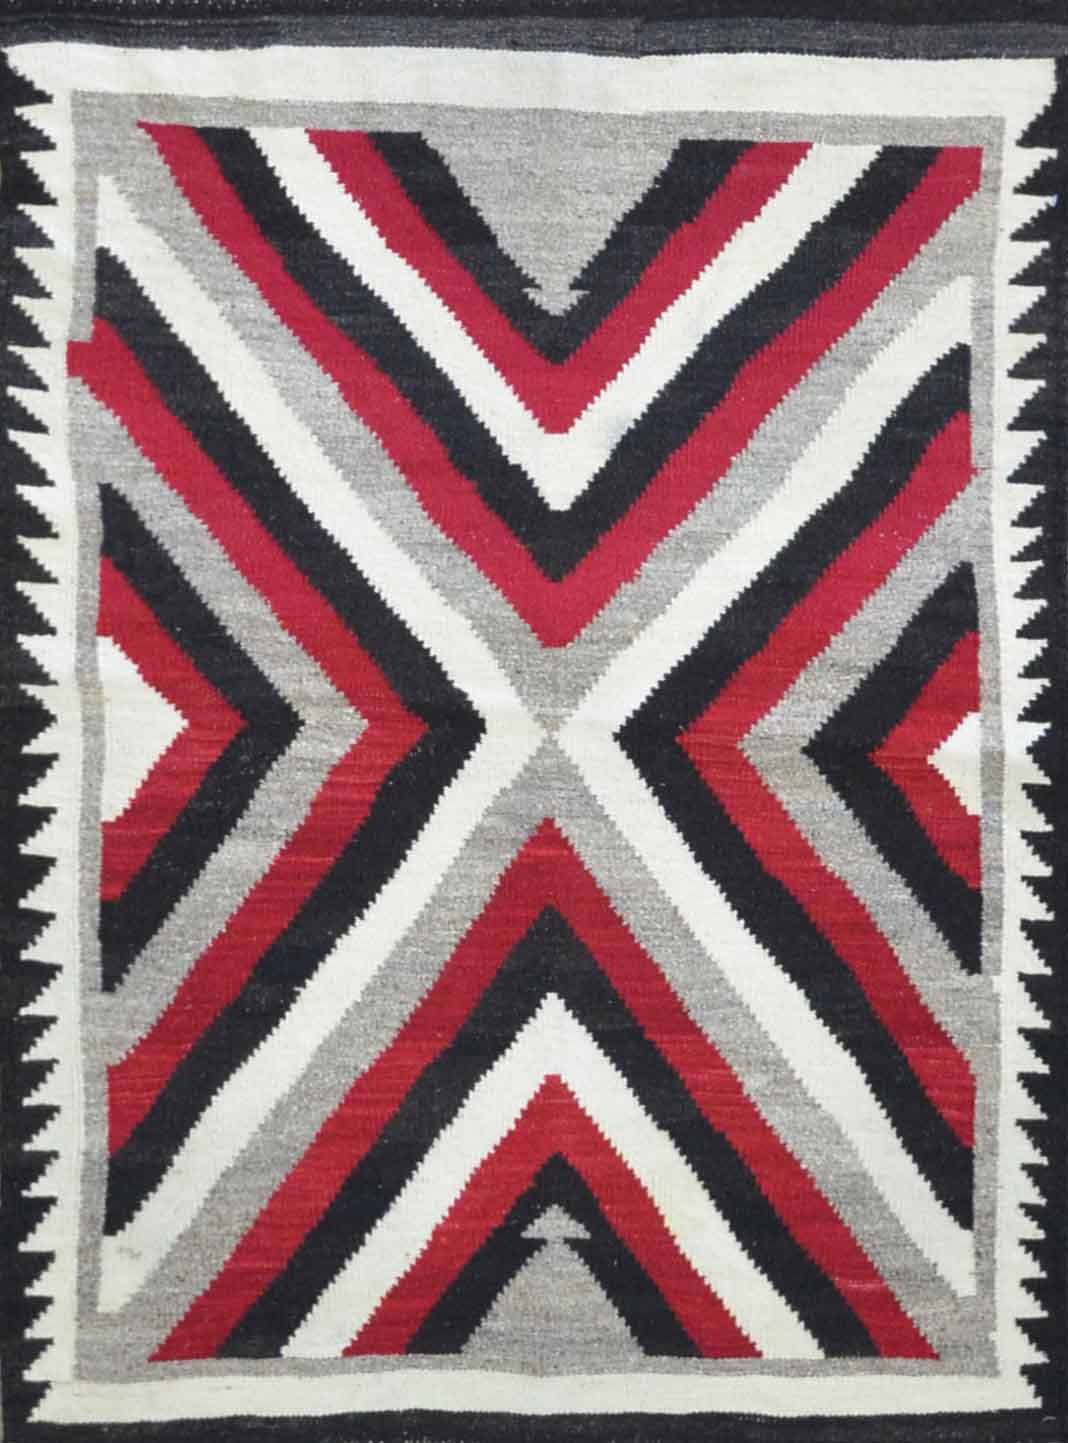 Handmade Old American Indian Navajo Rug Cc1843 On Sale At Carpet